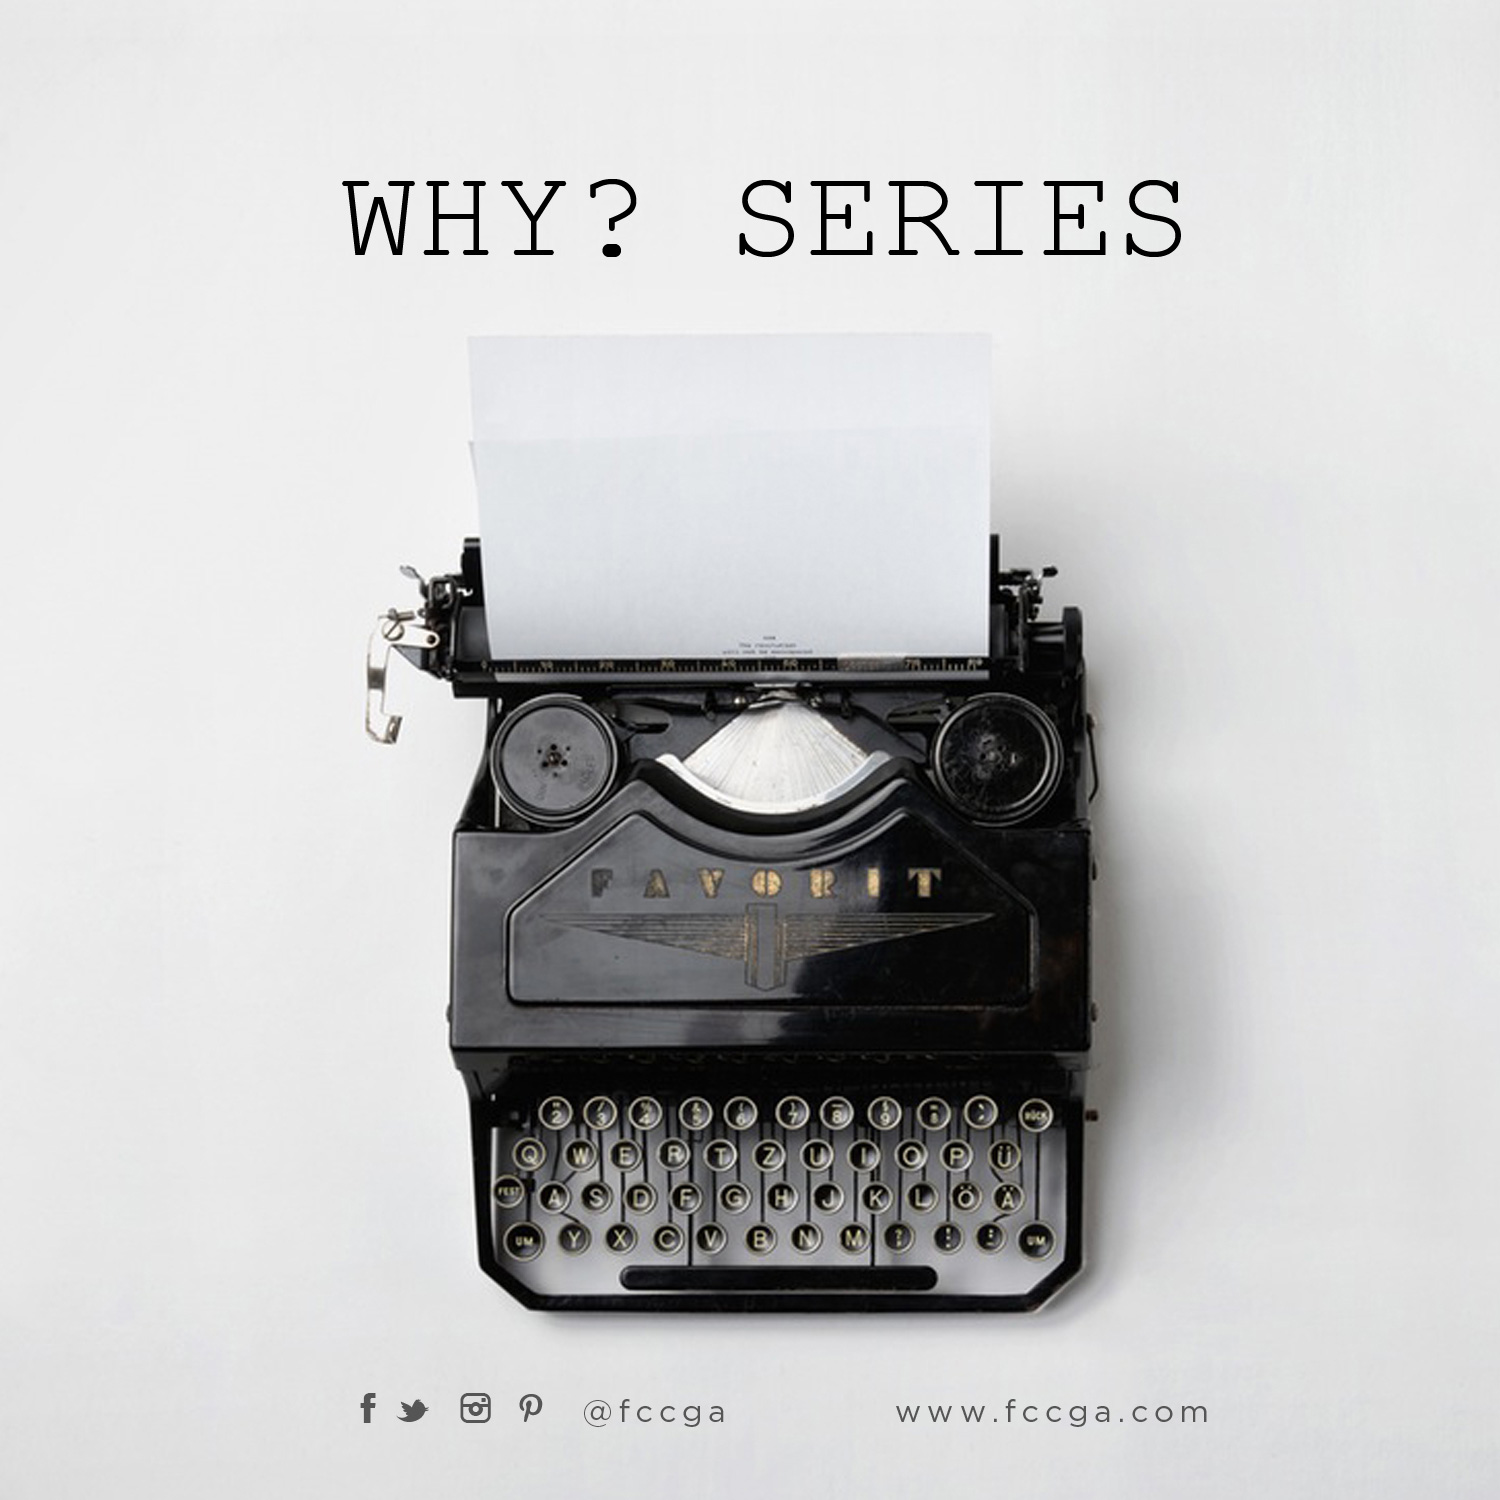 Why?, Question and Answer Session